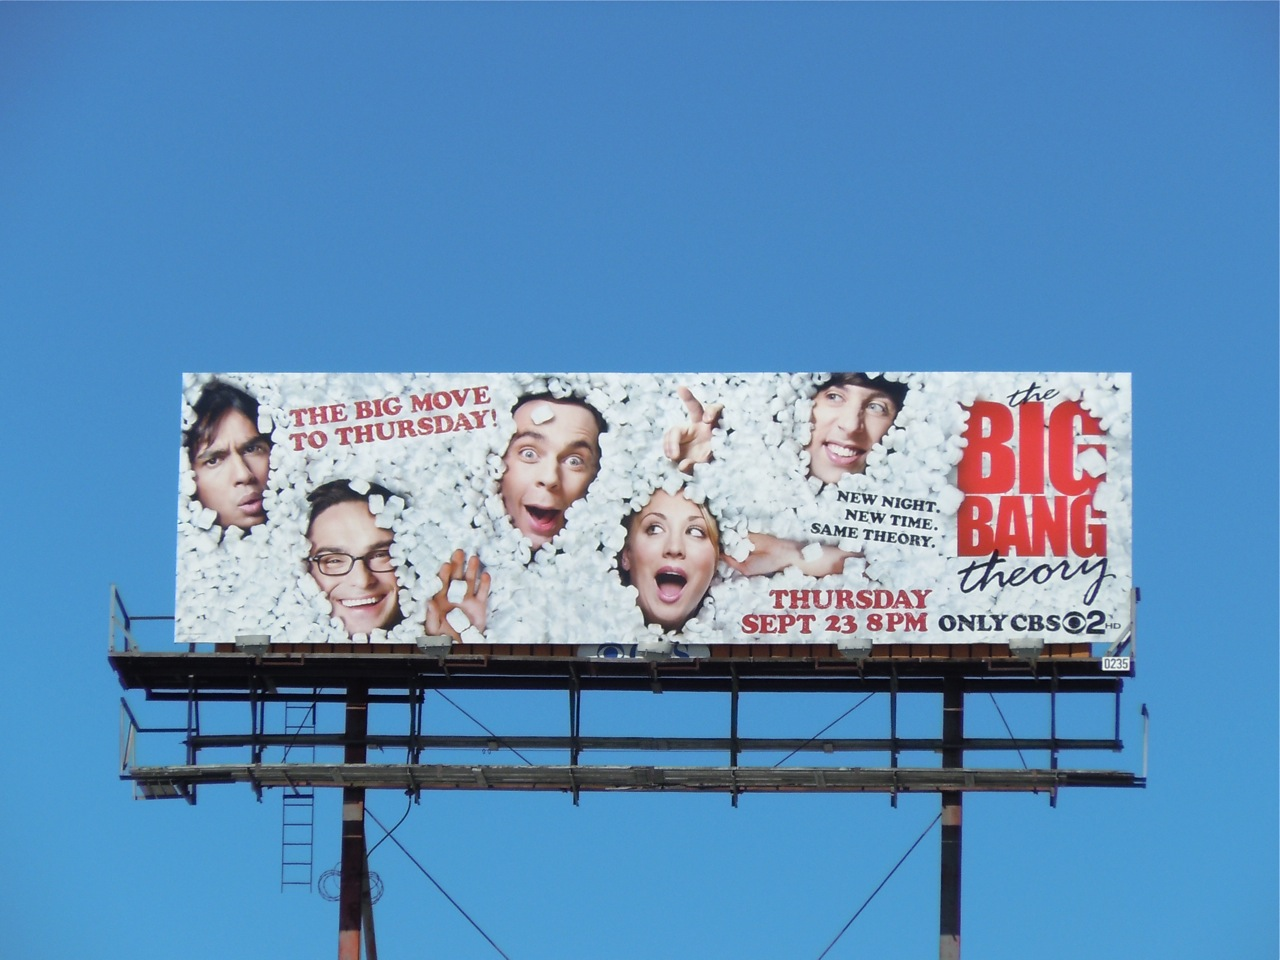 Big Bang Theory season 4 TV billboard